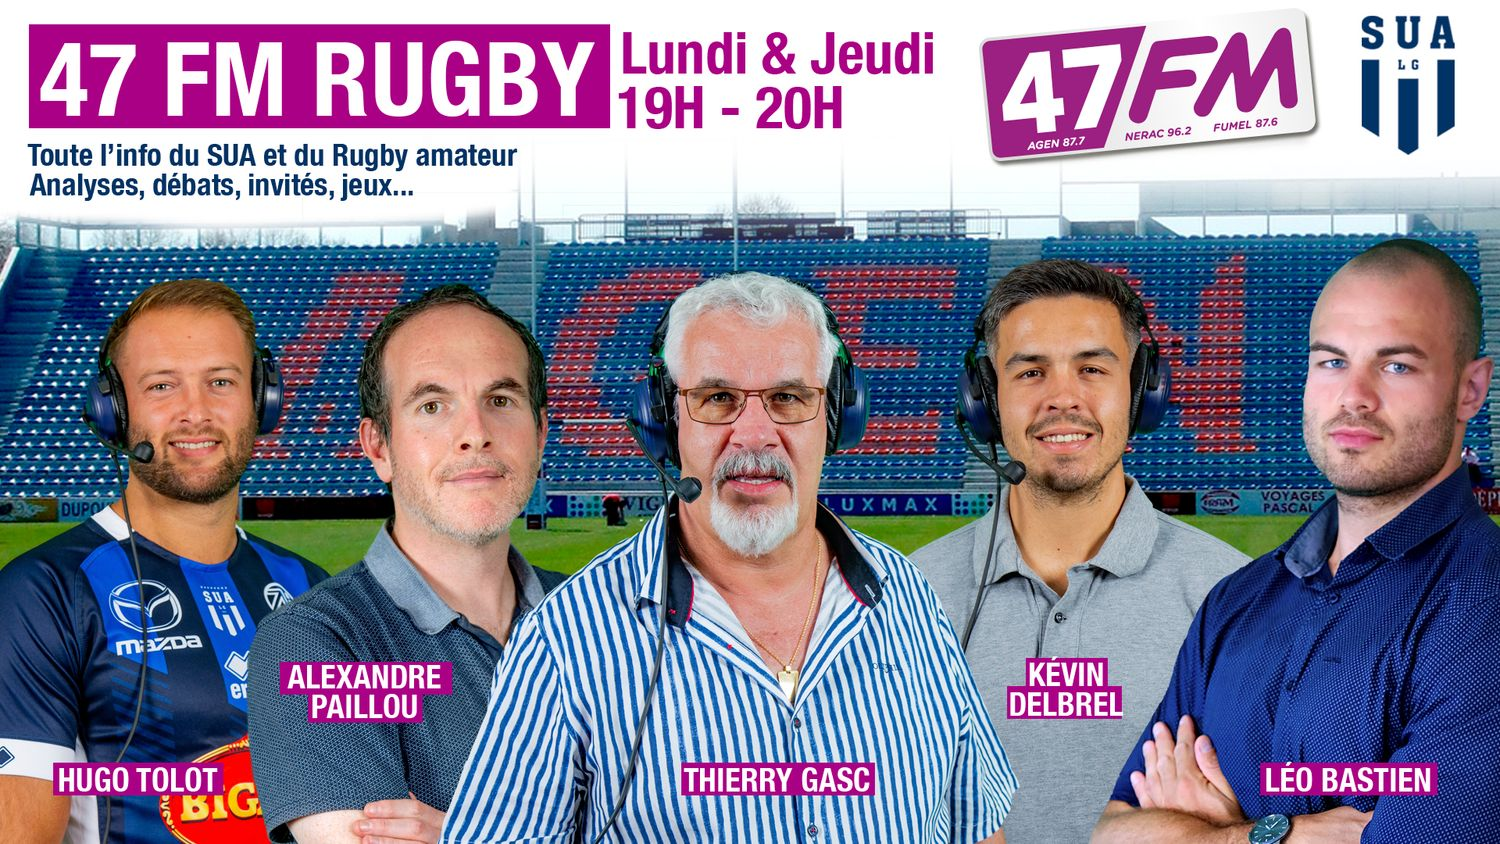 47 FM RUGBY